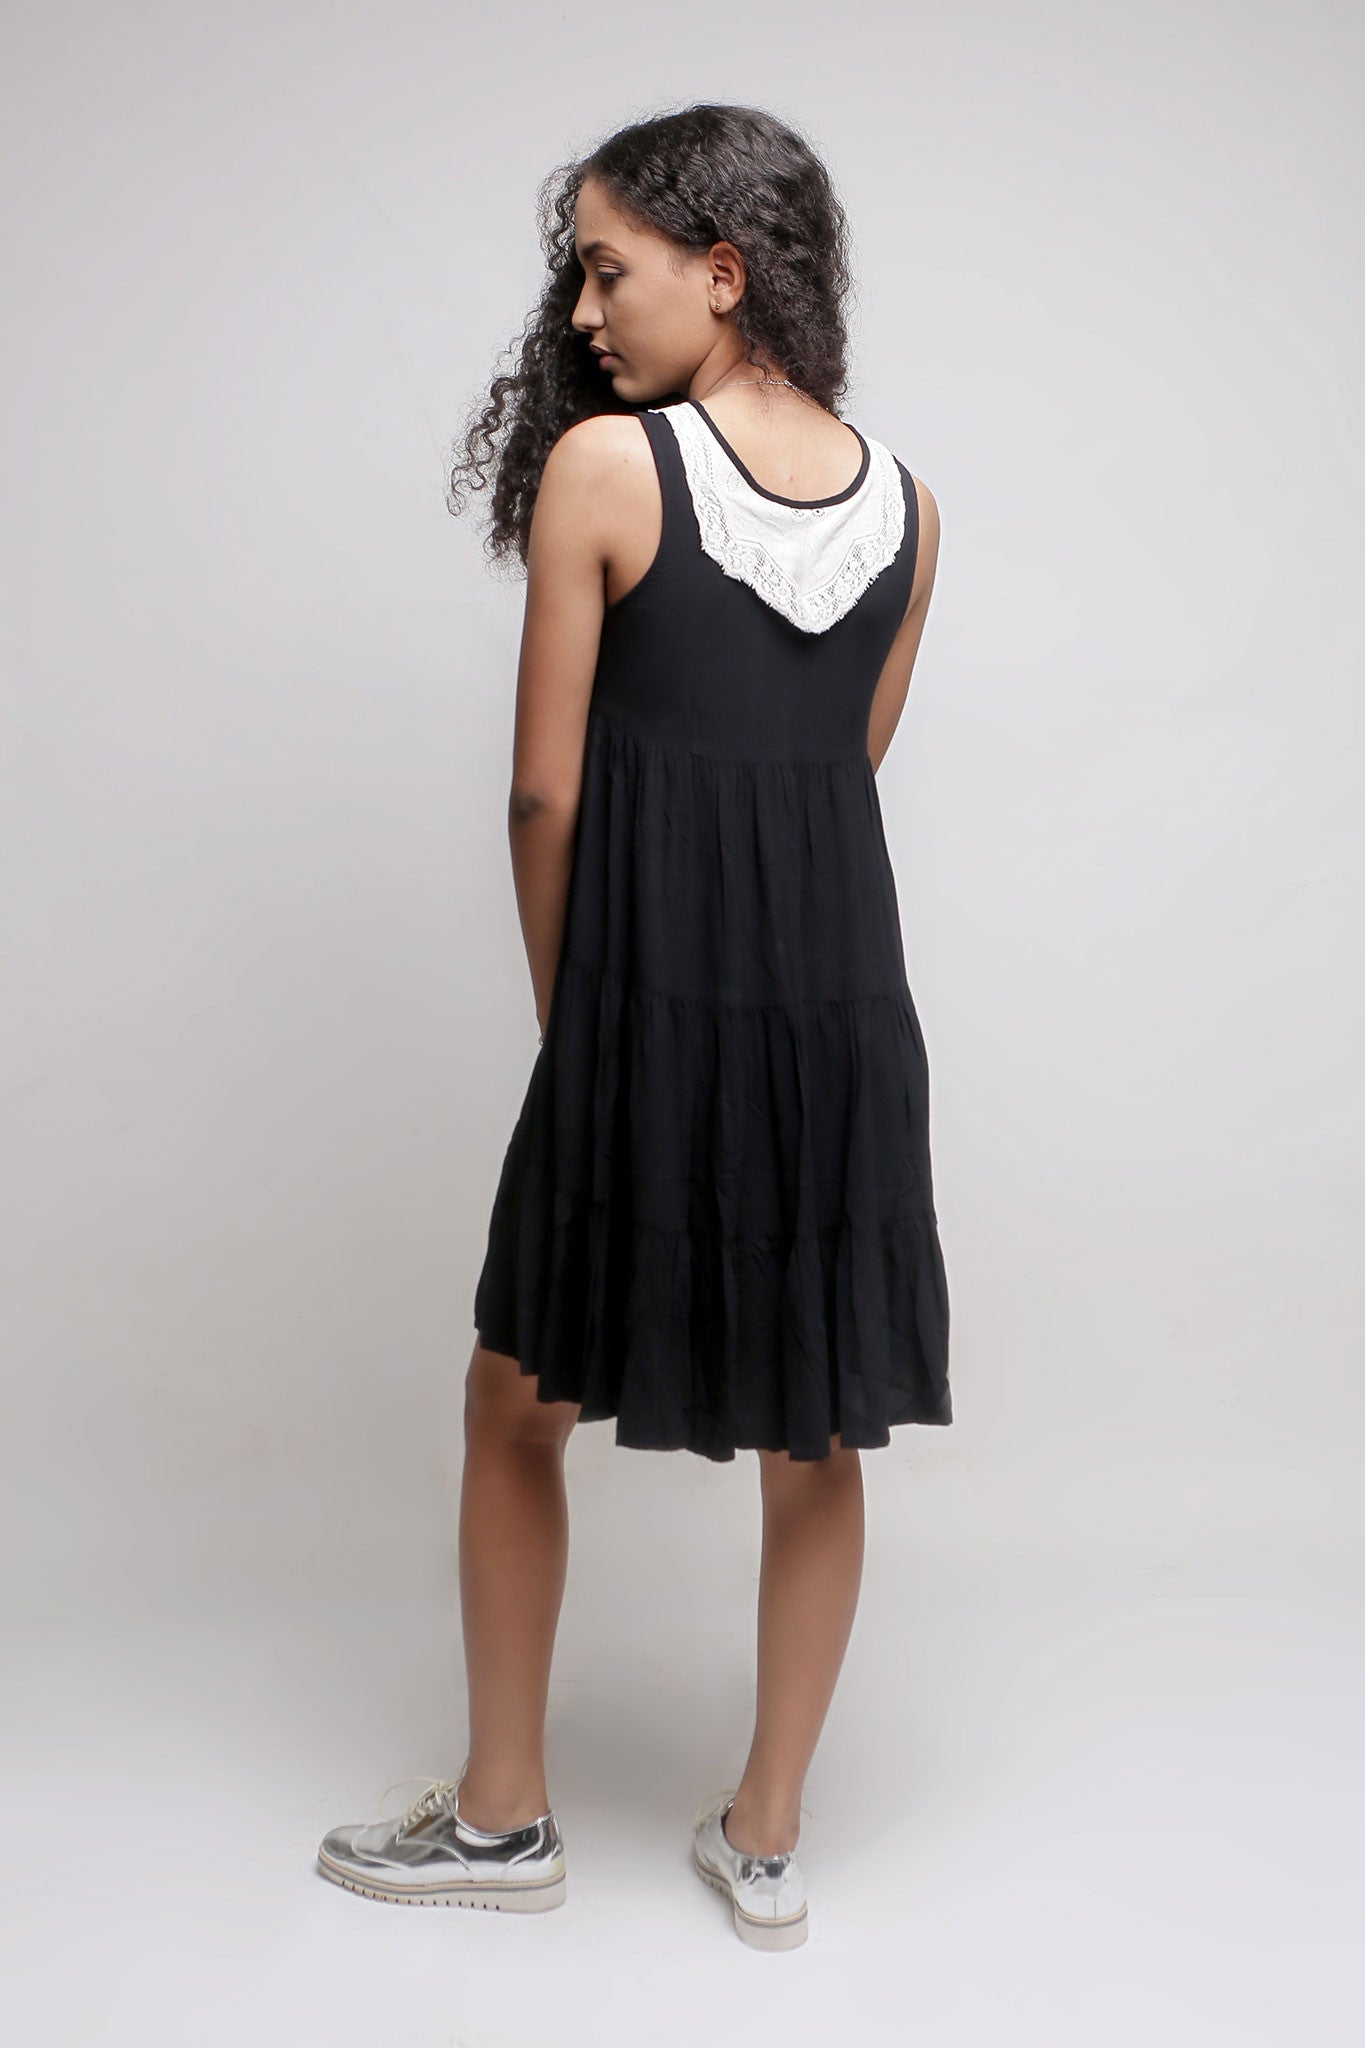 Black Knee Length Gypsy Dress with Lace Neckline